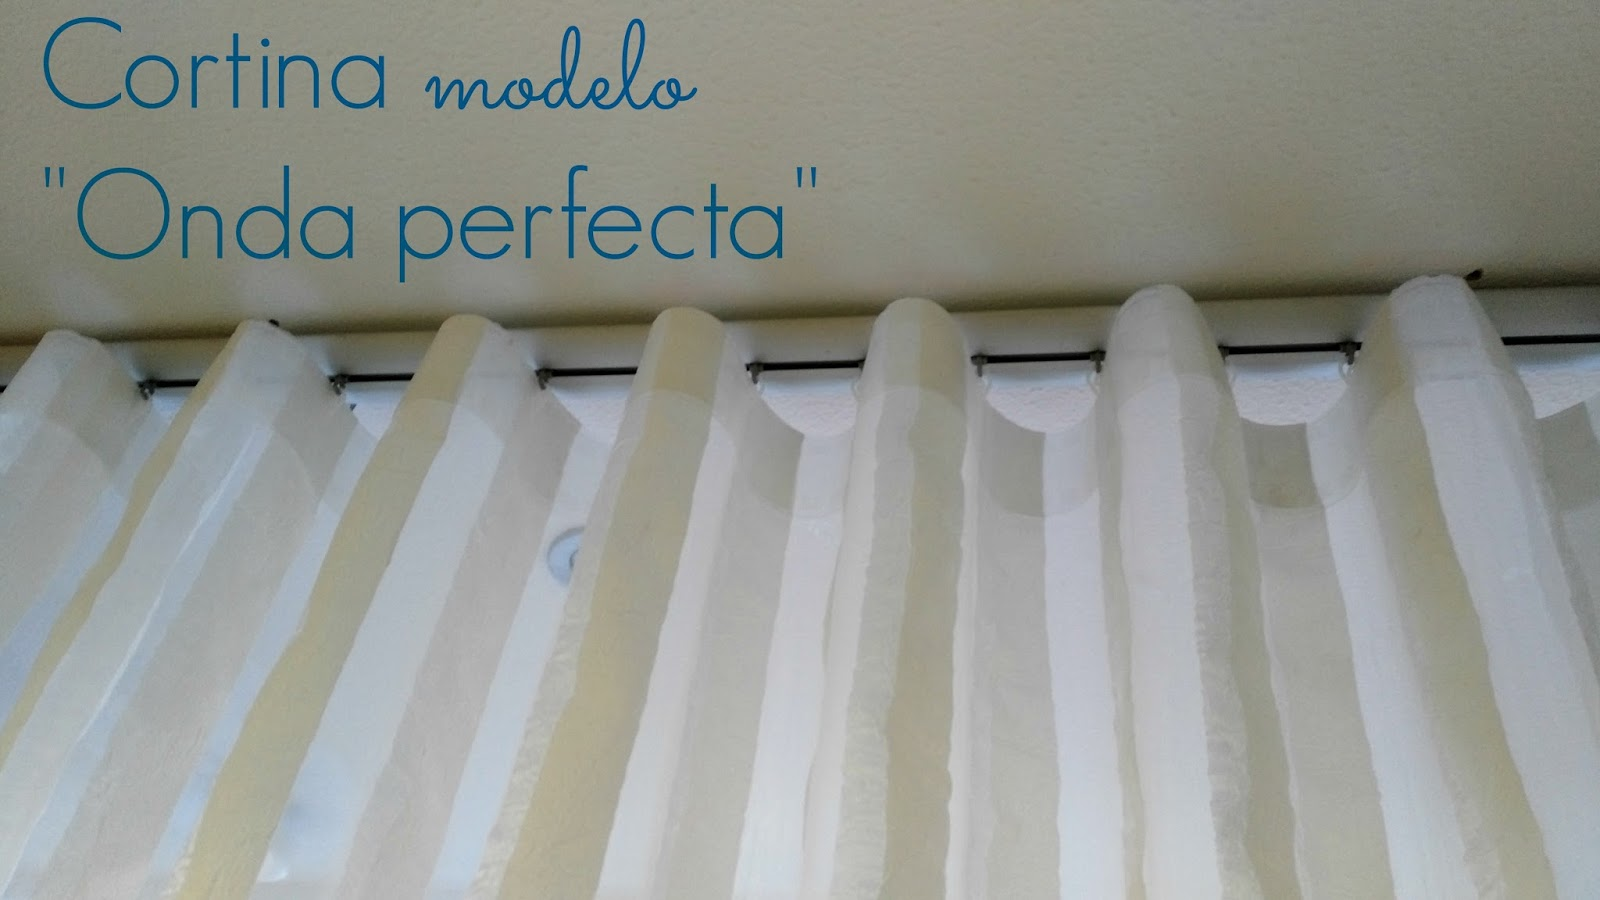 Cortinas onda perfecta una tendencia al alza for Ultimas tendencias en cortinas para salon